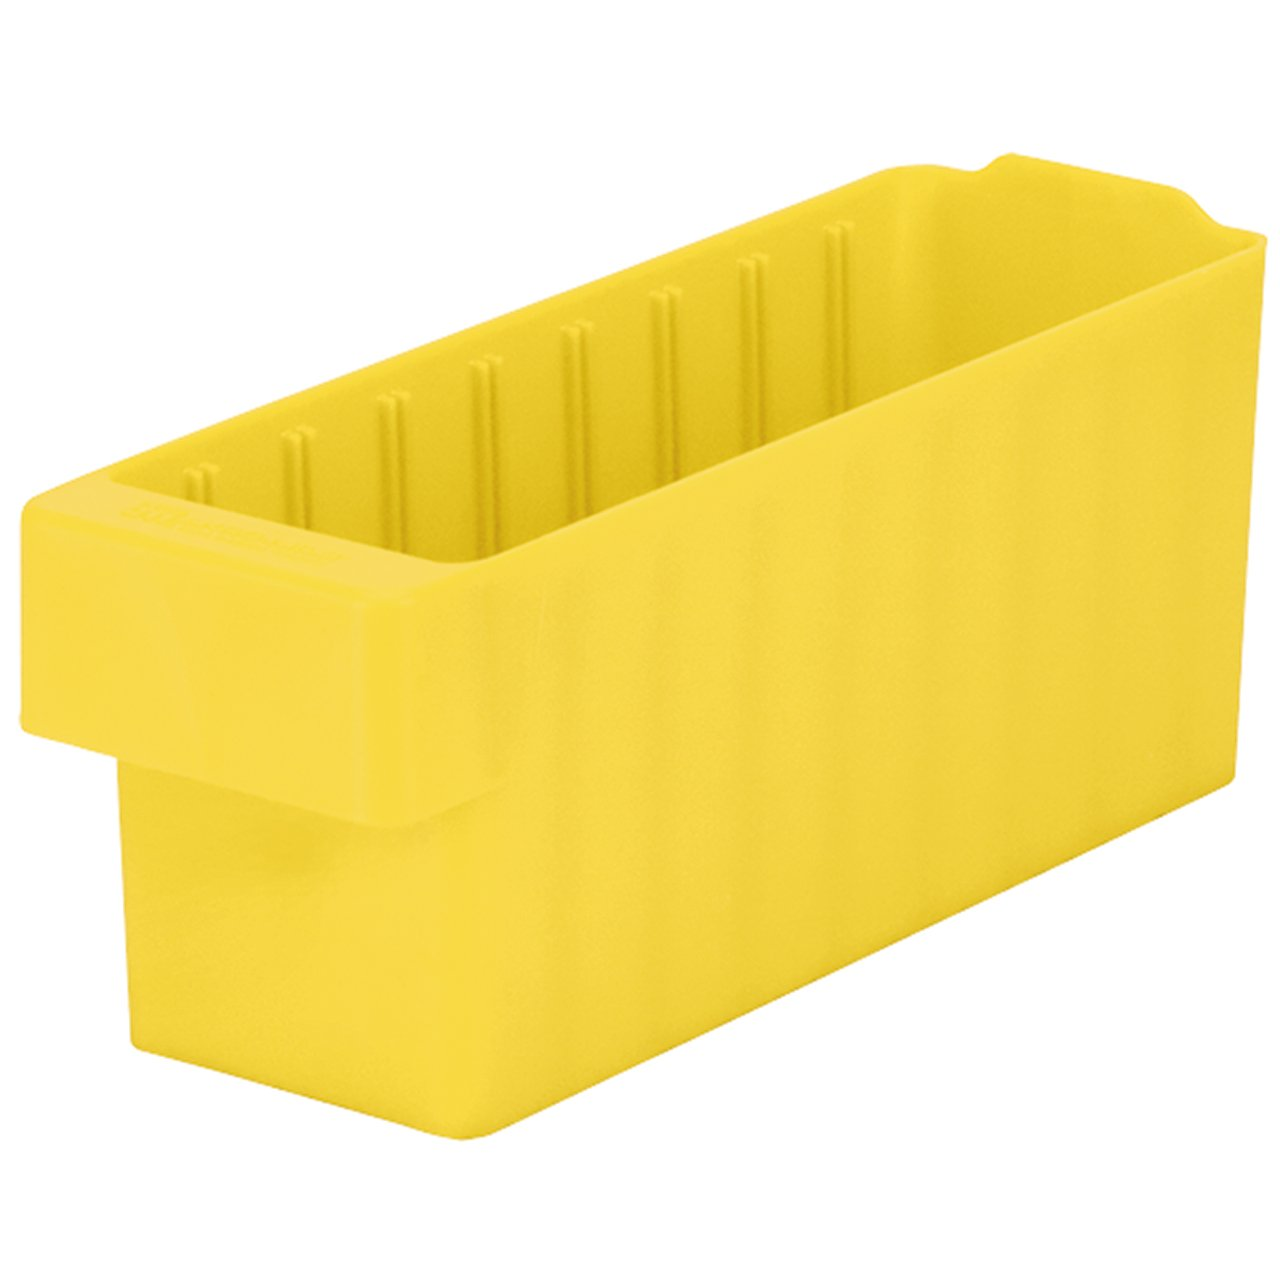 Akro-Mils 31148 17-5/8-Inch L by 3-3/4-Inch W by 4-5/8-Inch H, AkroDrawer Plastic Storage Drawer, Yellow, Case of 6